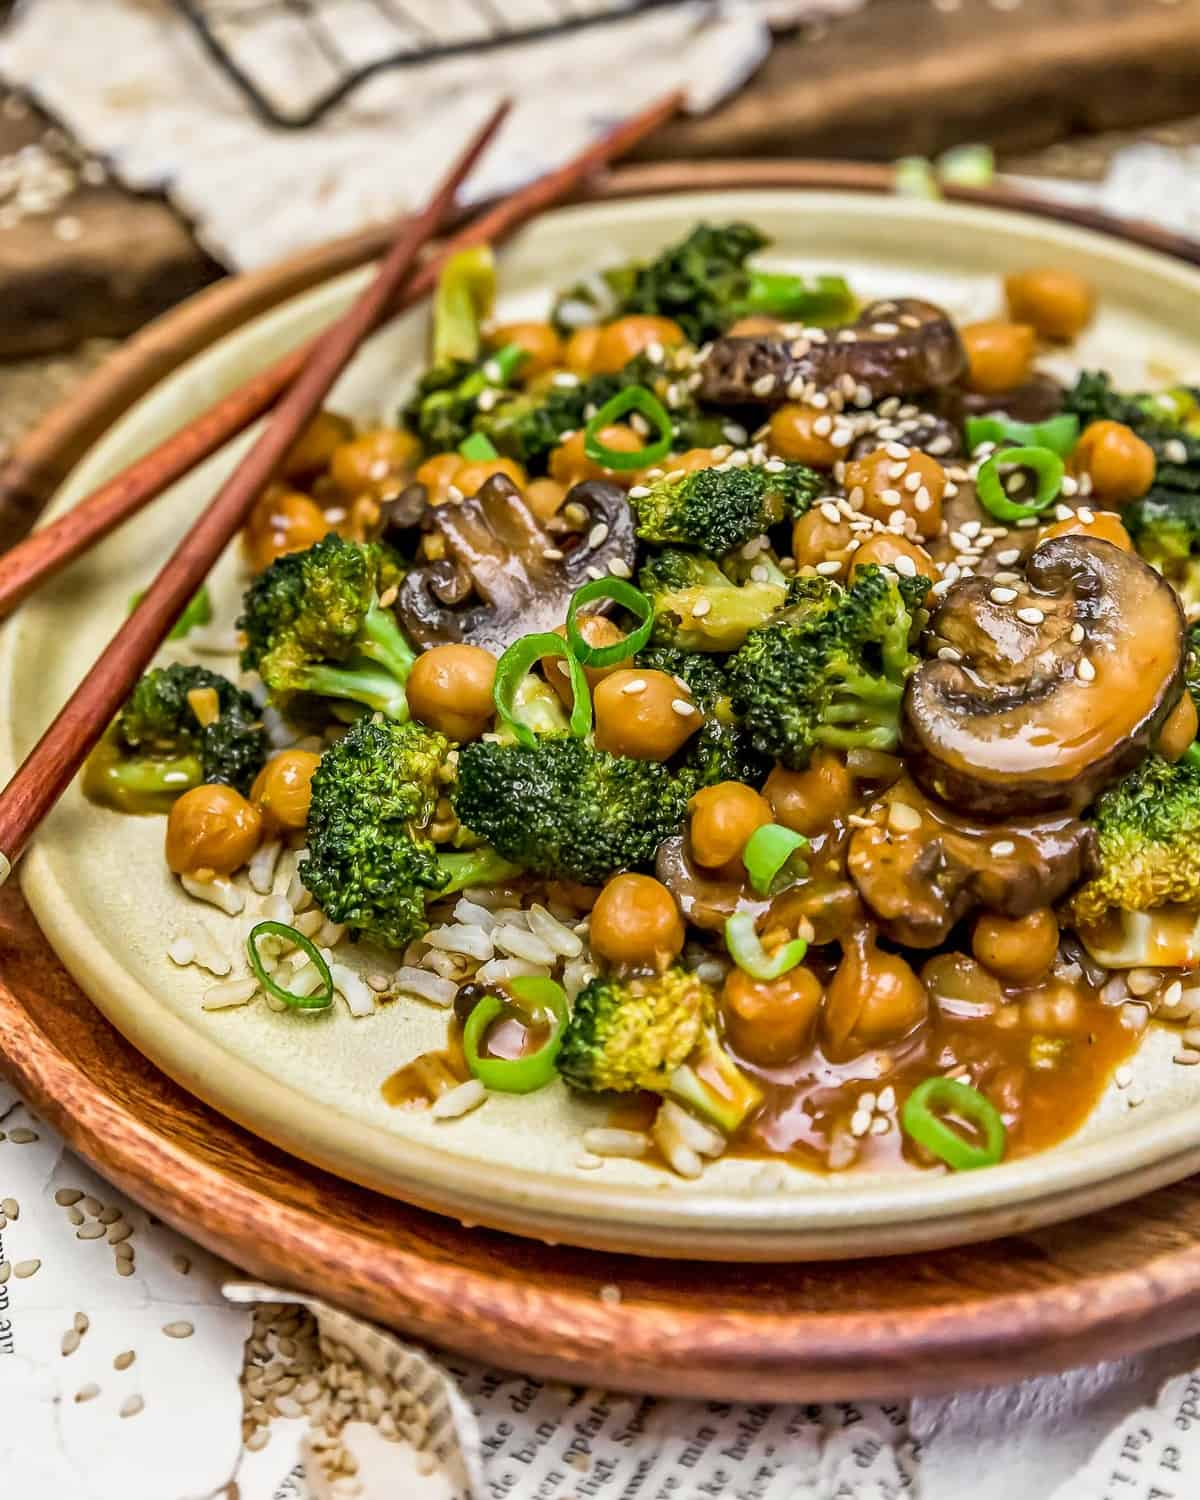 General Tso's Broccoli Mushroom Stir Fry